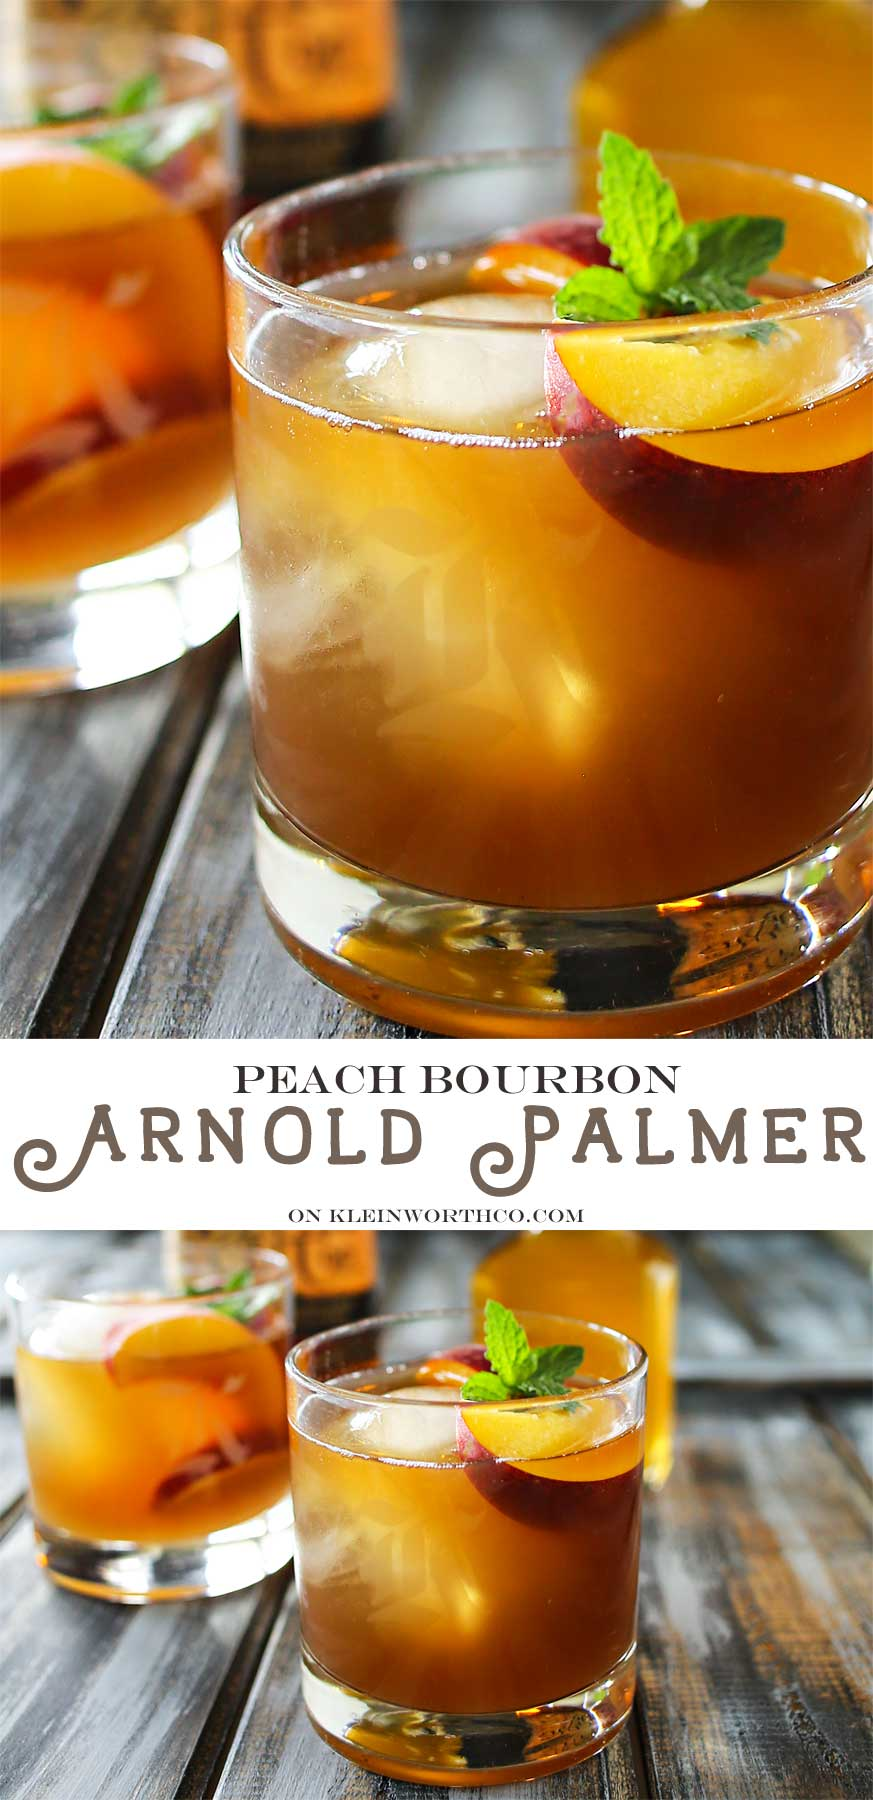 Peach Bourbon Arnold Palmer, a delightful twist on a classic refreshment.